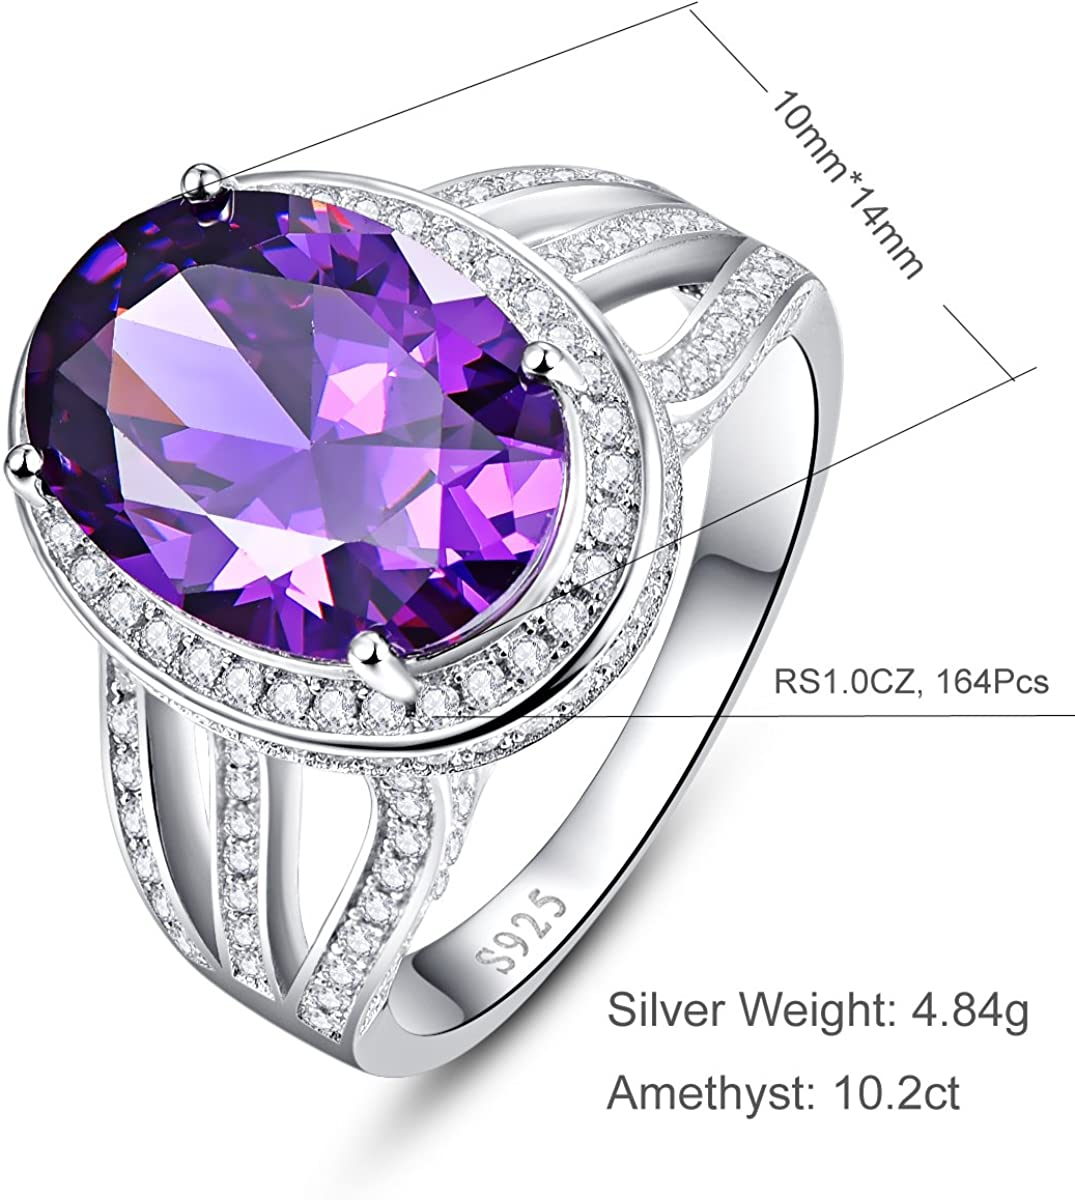 2018 Ultra Luxury High Fashion Lovely Purple and White AAA Lab Diamond Ring